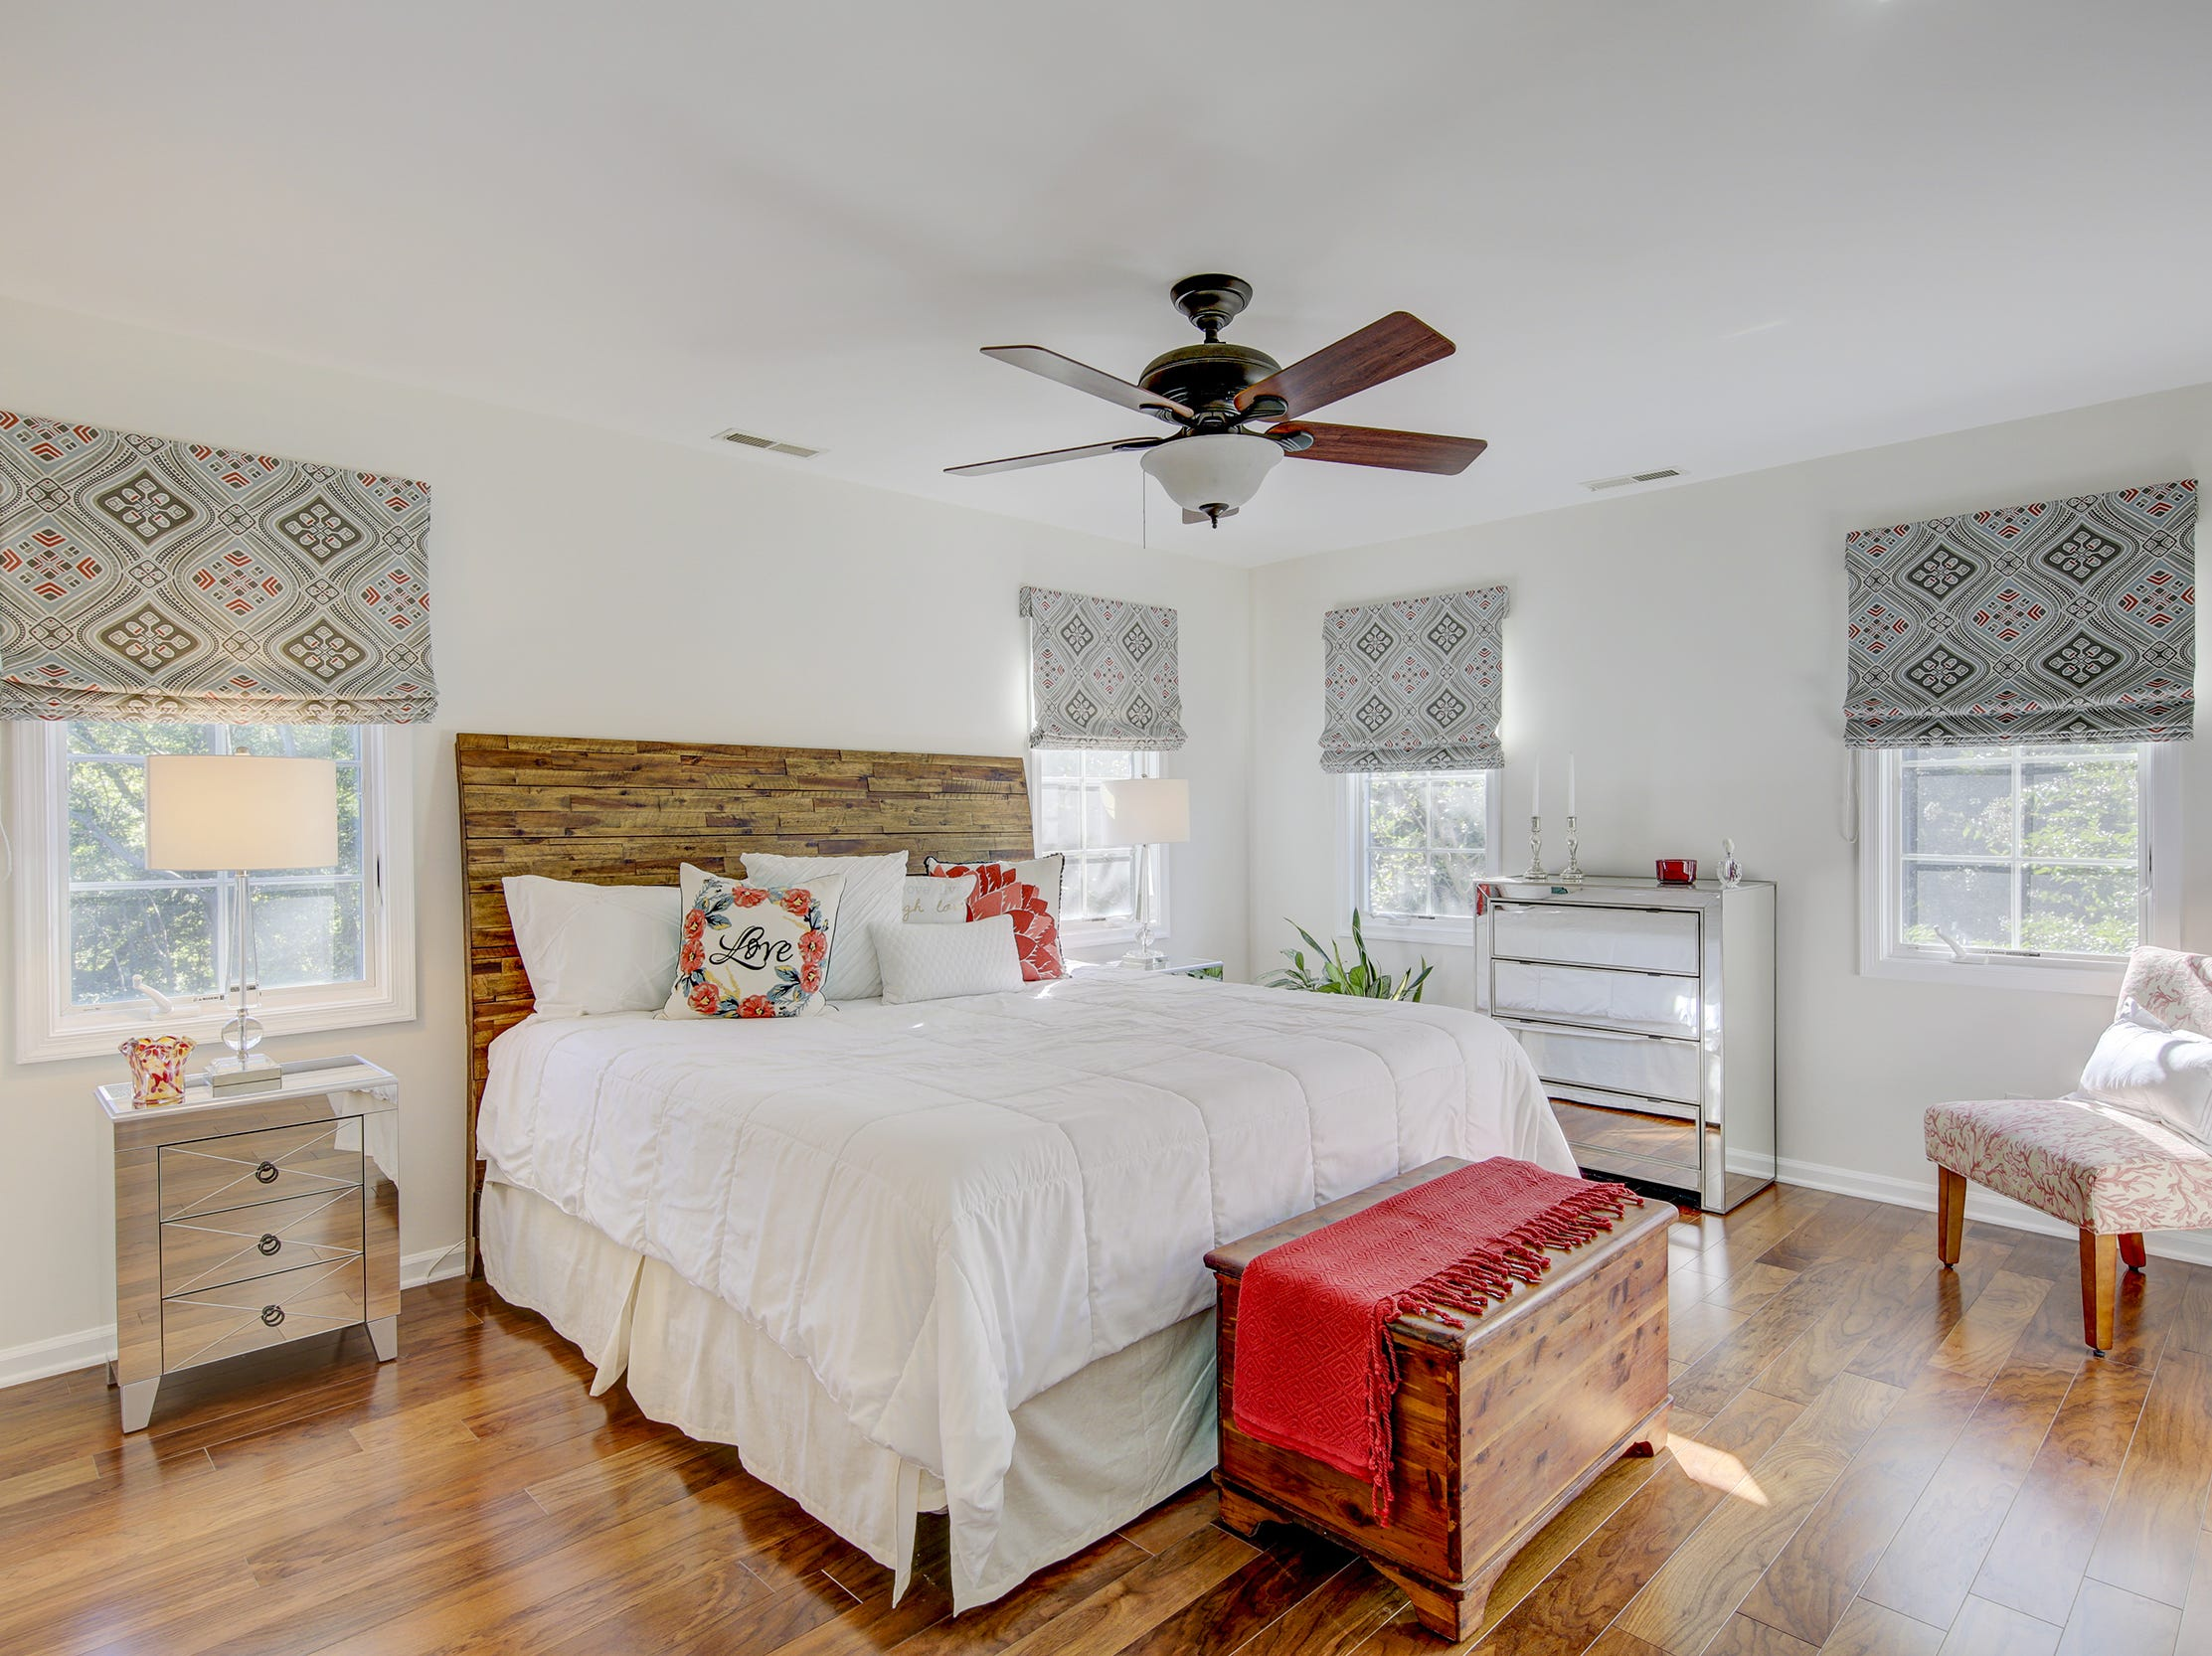 The first-floor master bedroom at 204 Lakeview Shores has lots of natural light.